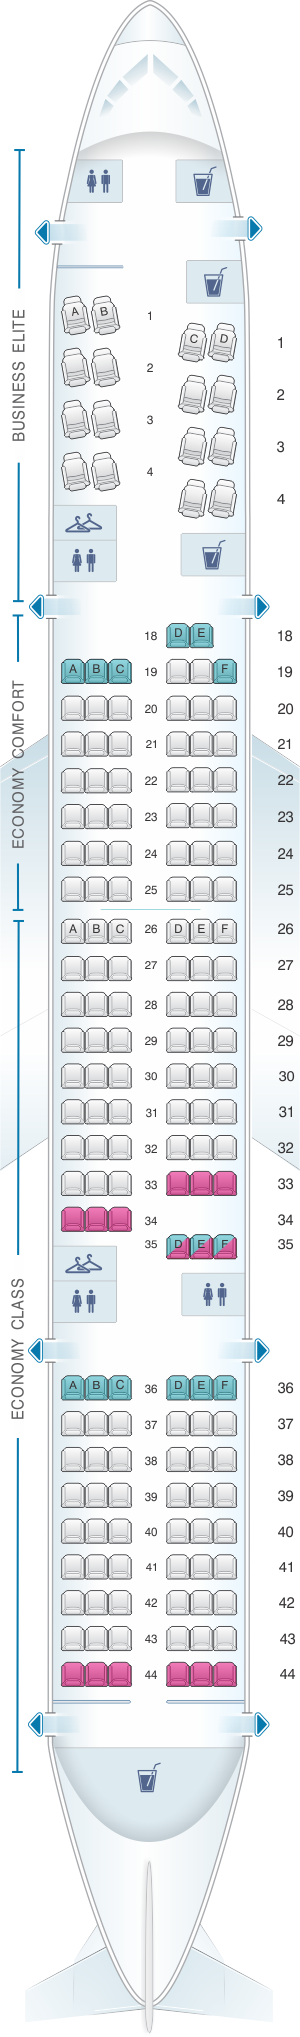 Seat map for Delta Air Lines Boeing B757 200 (75S)